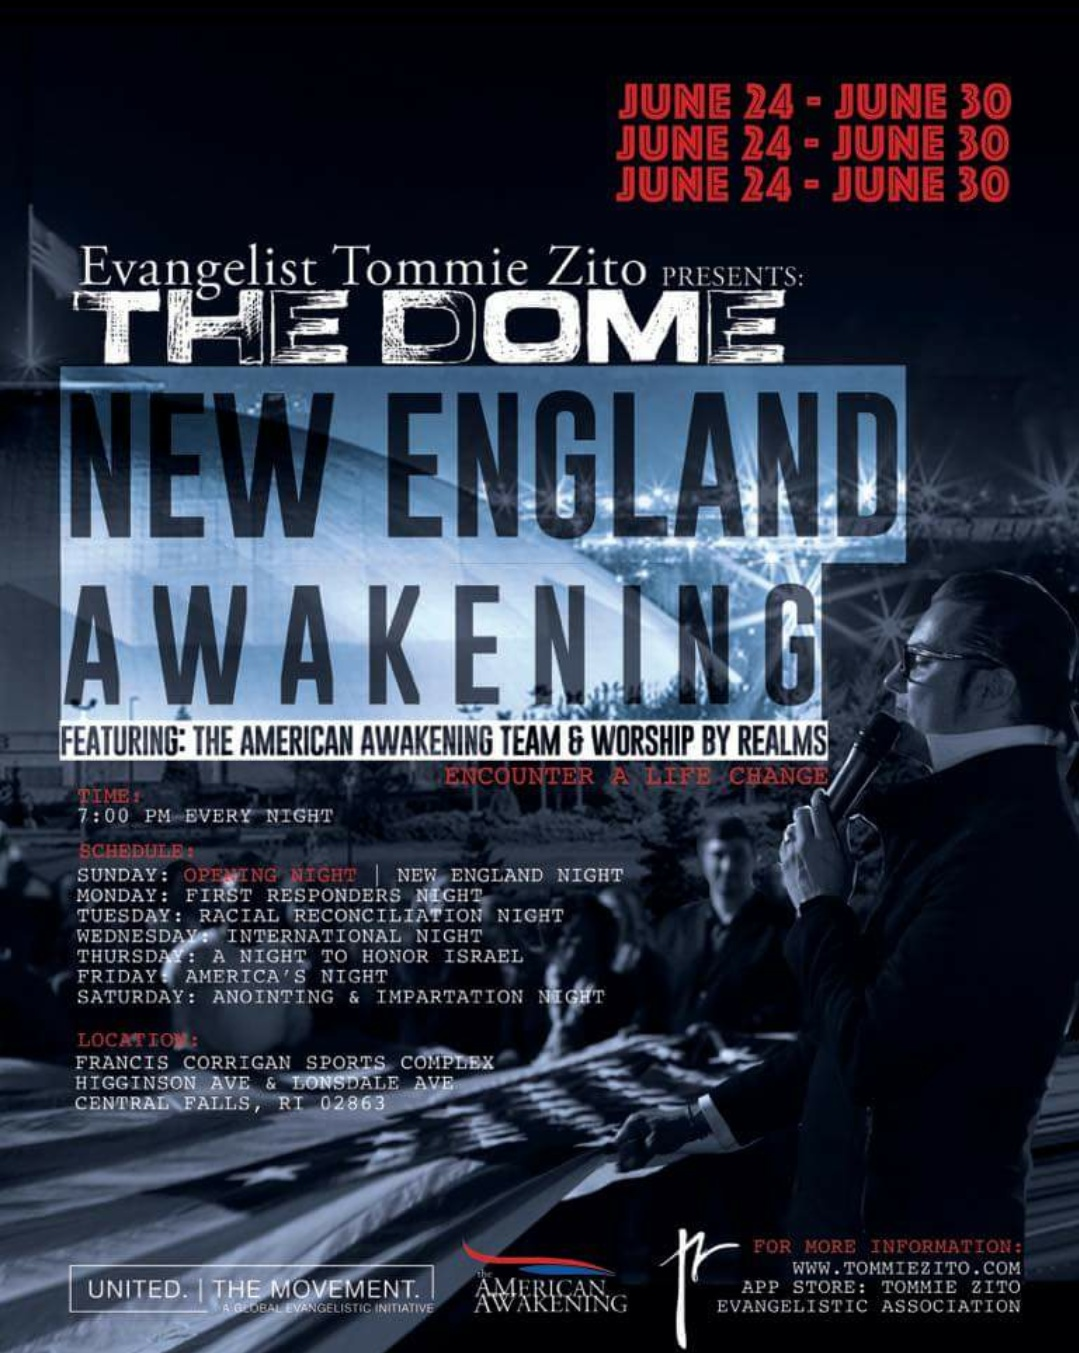 tommie-zito-evangdlism-event-new-england